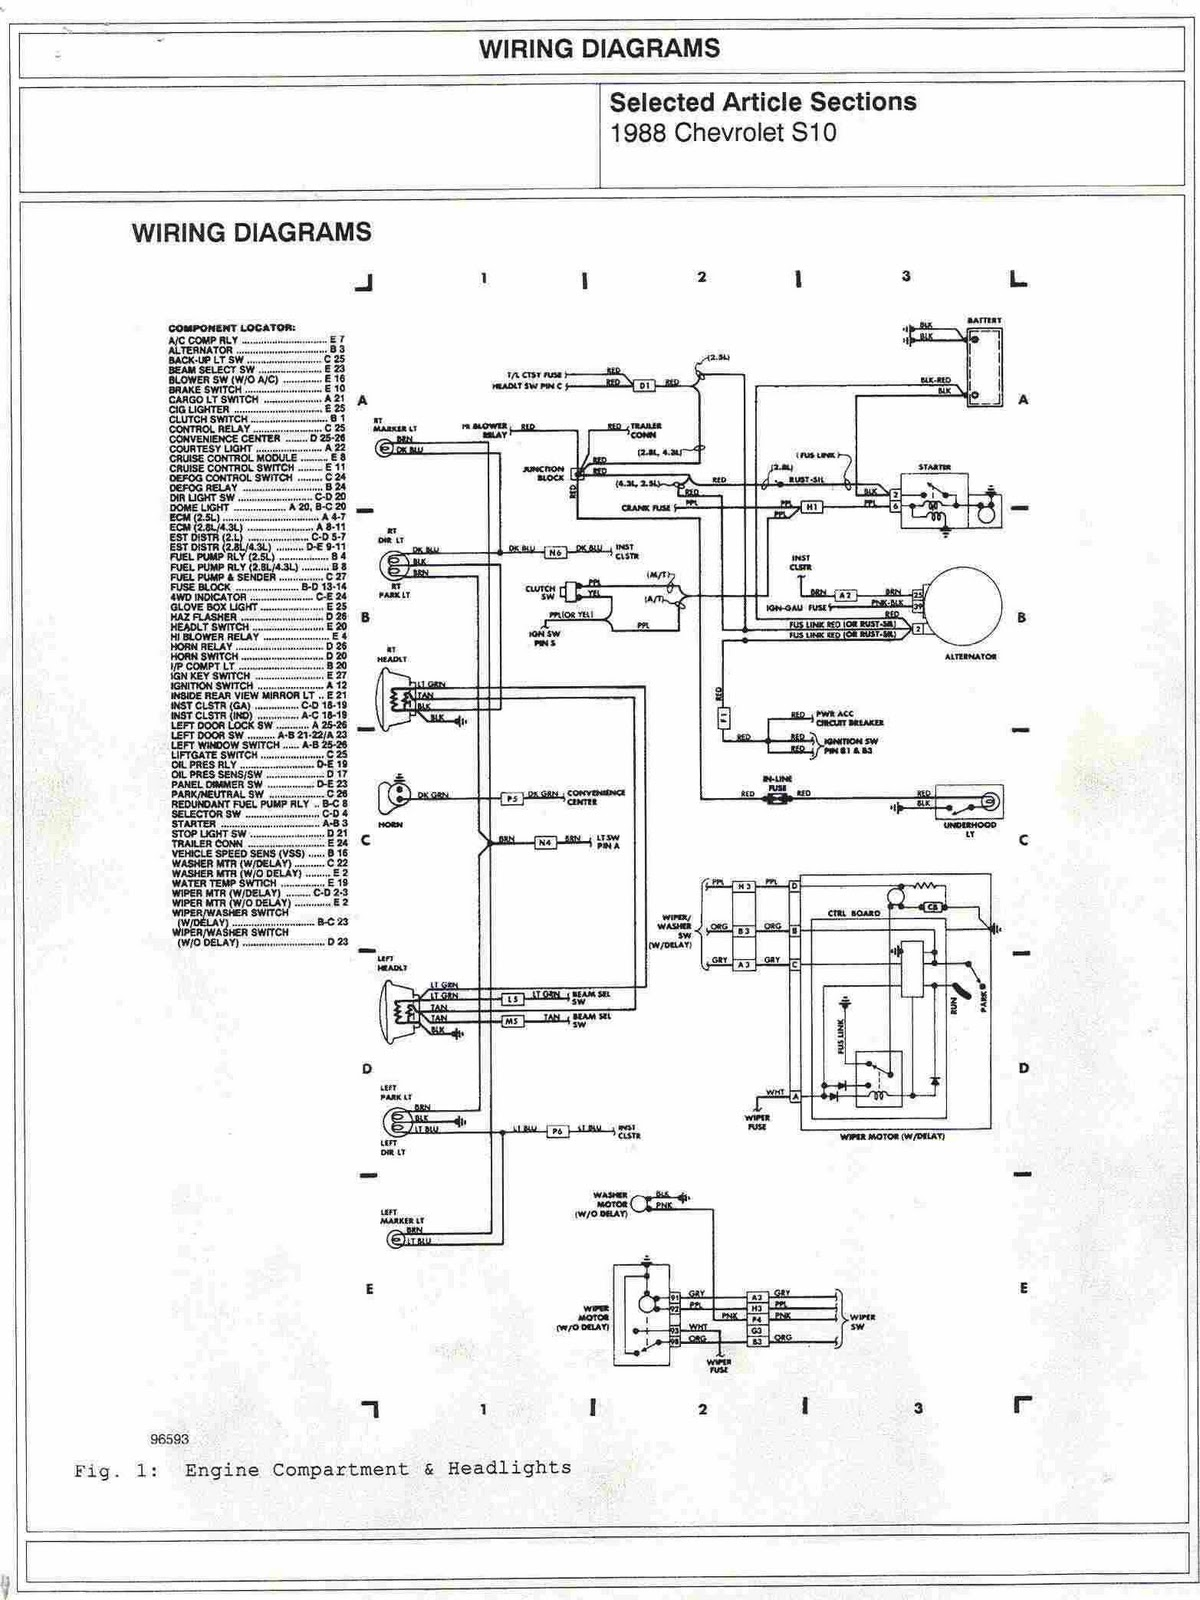 1988+Chevrolet+S10+Engine+Compartment+and+Headlights+Wiring+Diagrams 95 s10 wiring diagram 95 tahoe wiring diagram \u2022 wiring diagrams 1994 S10 Power Stearing Pump at suagrazia.org